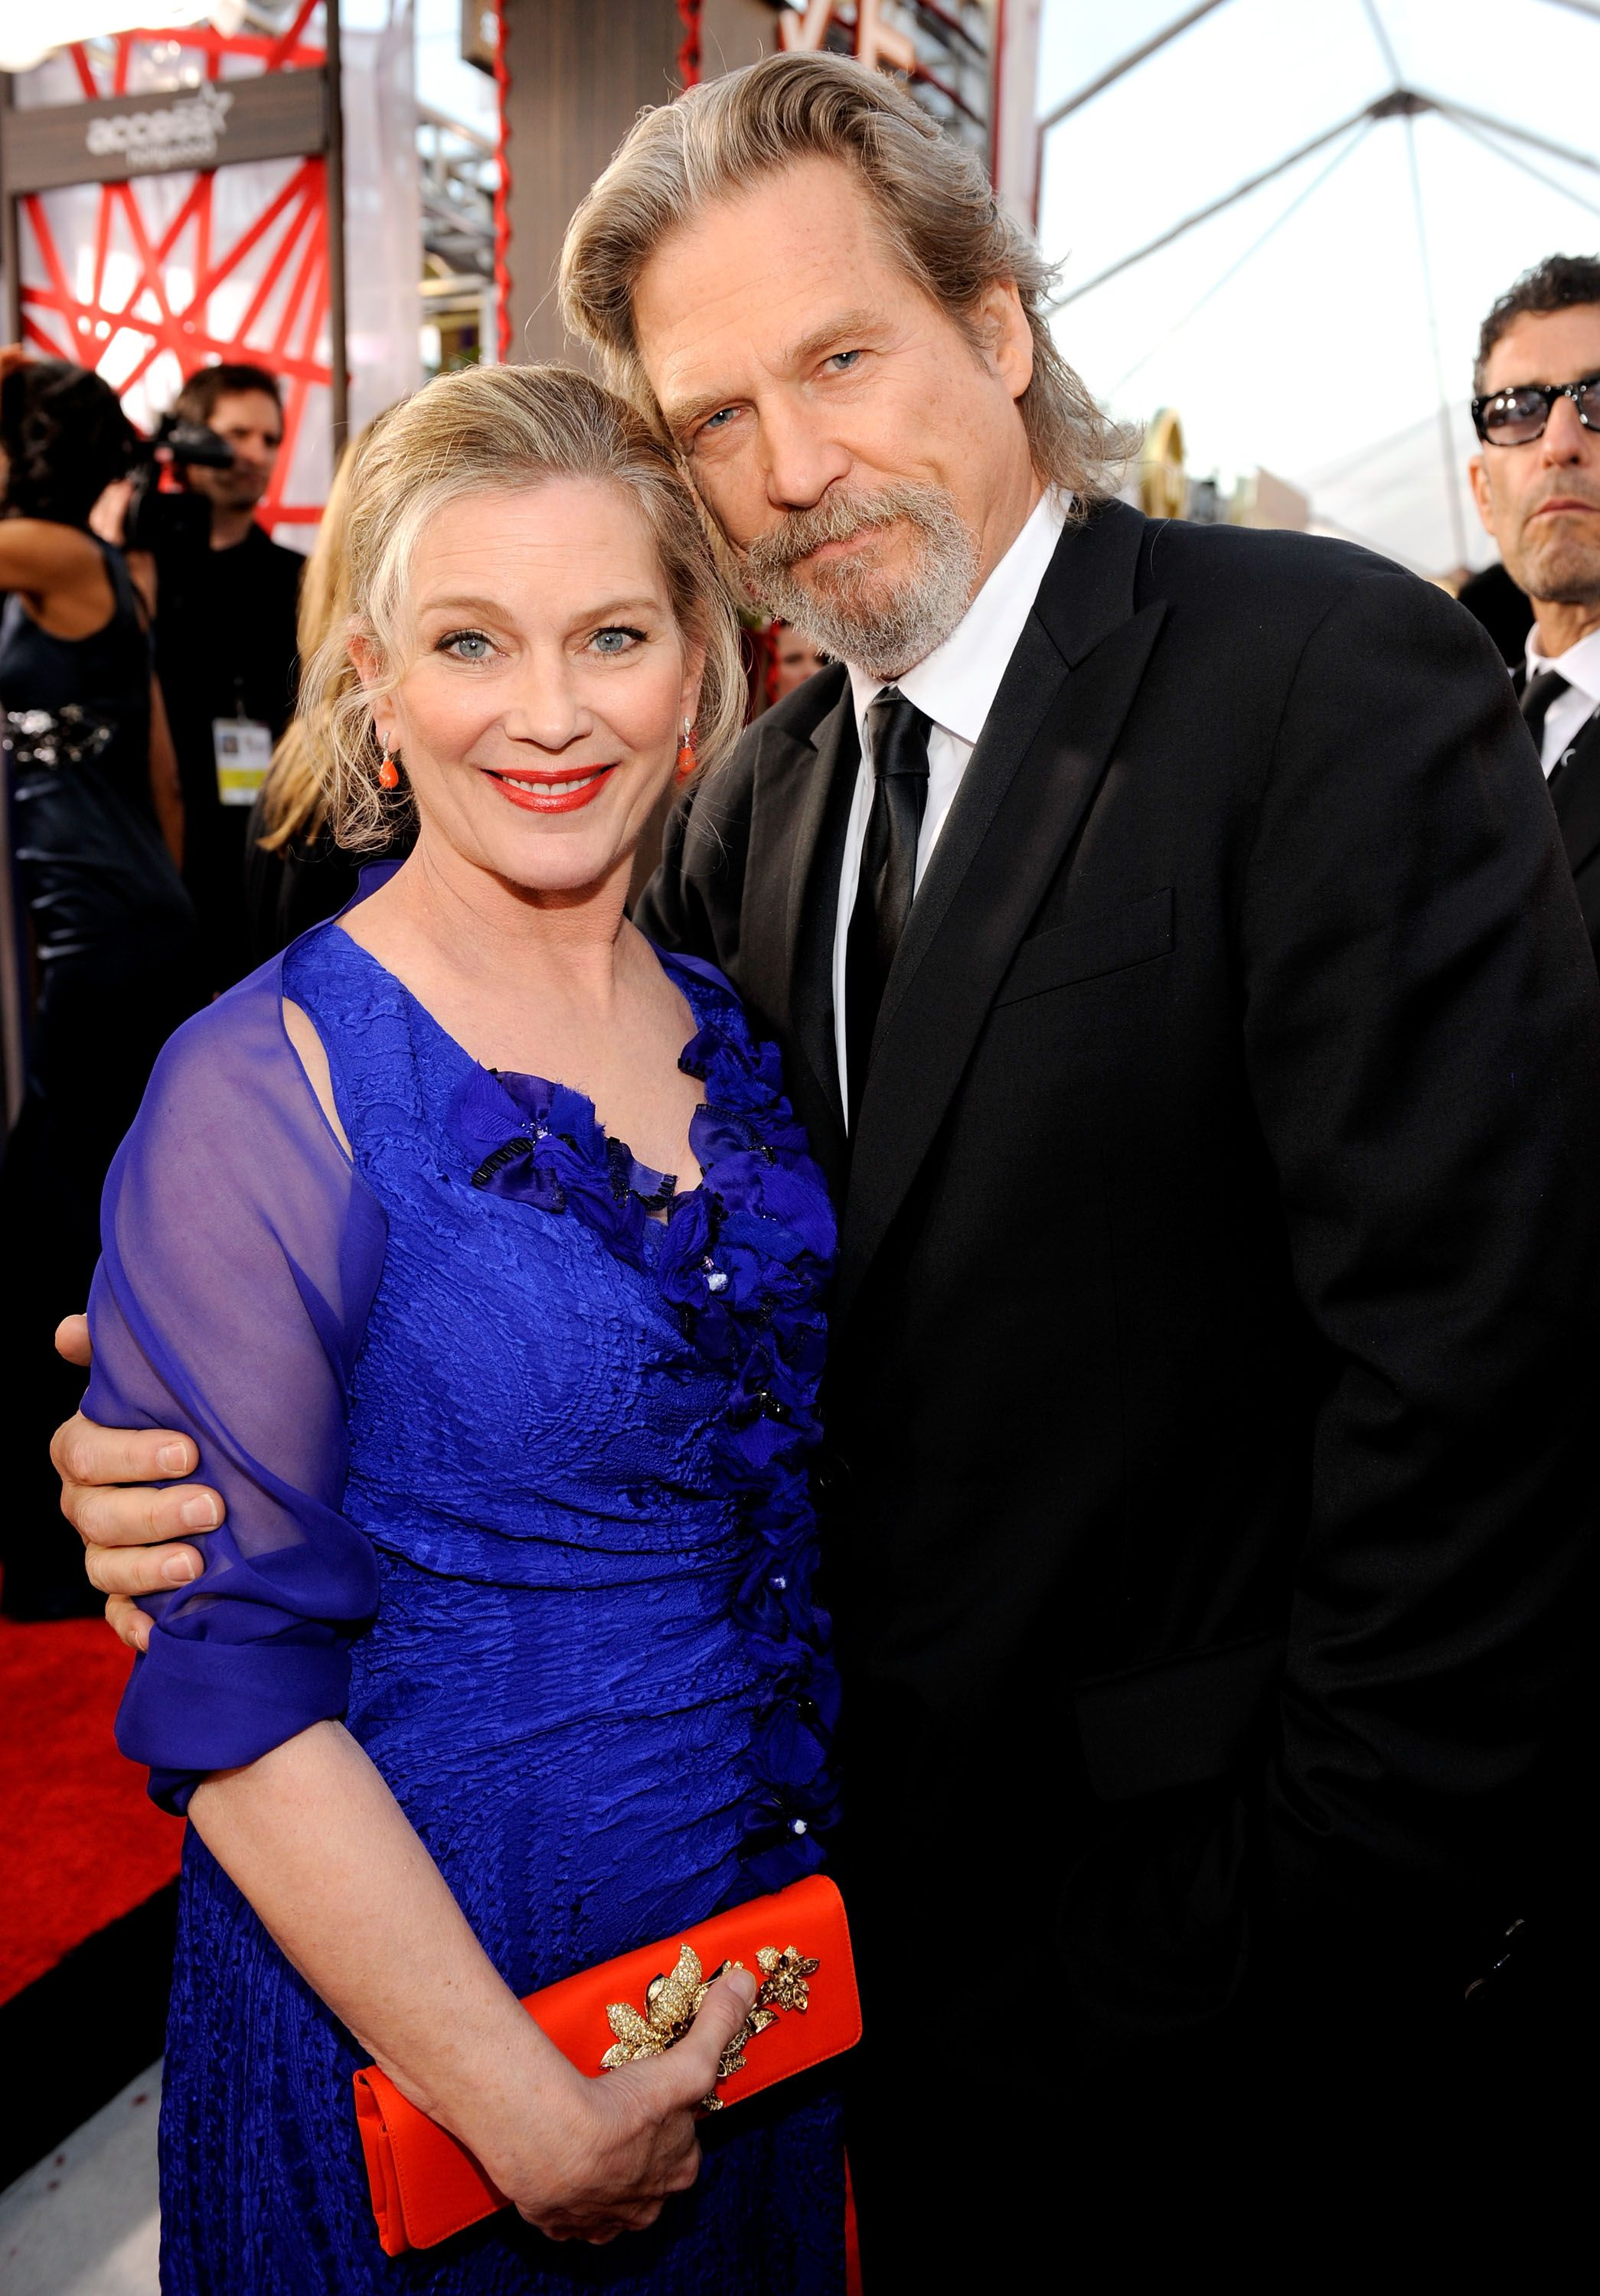 Susan Geston and actor Jeff Bridges at the 16th Annual Screen Actors Guild Awards held at the Shrine Auditorium on January 23, 2010 | Photo: Getty Images